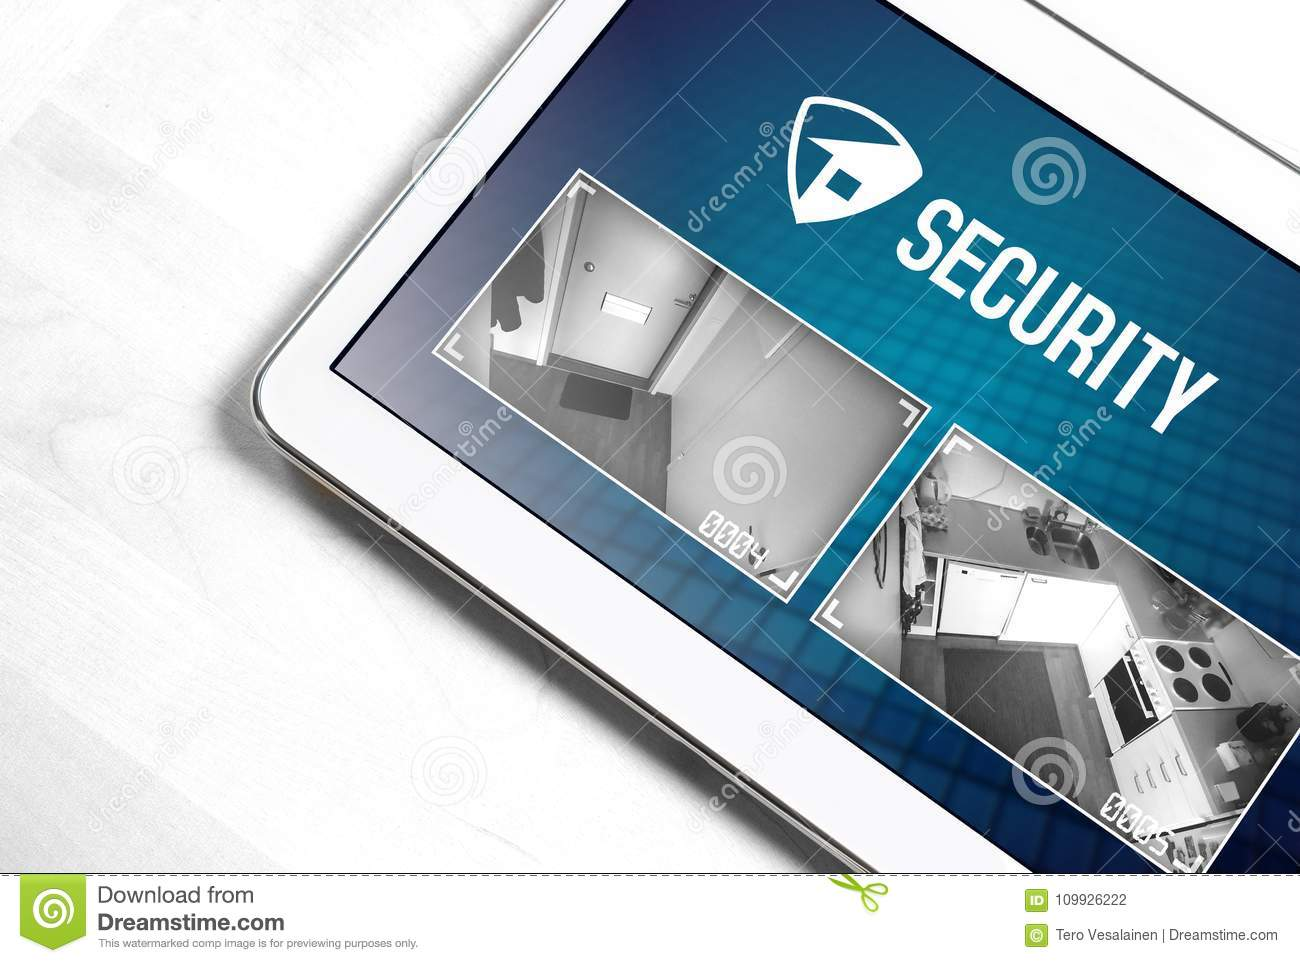 Home Security System And Application In Tablet  Stock Photo